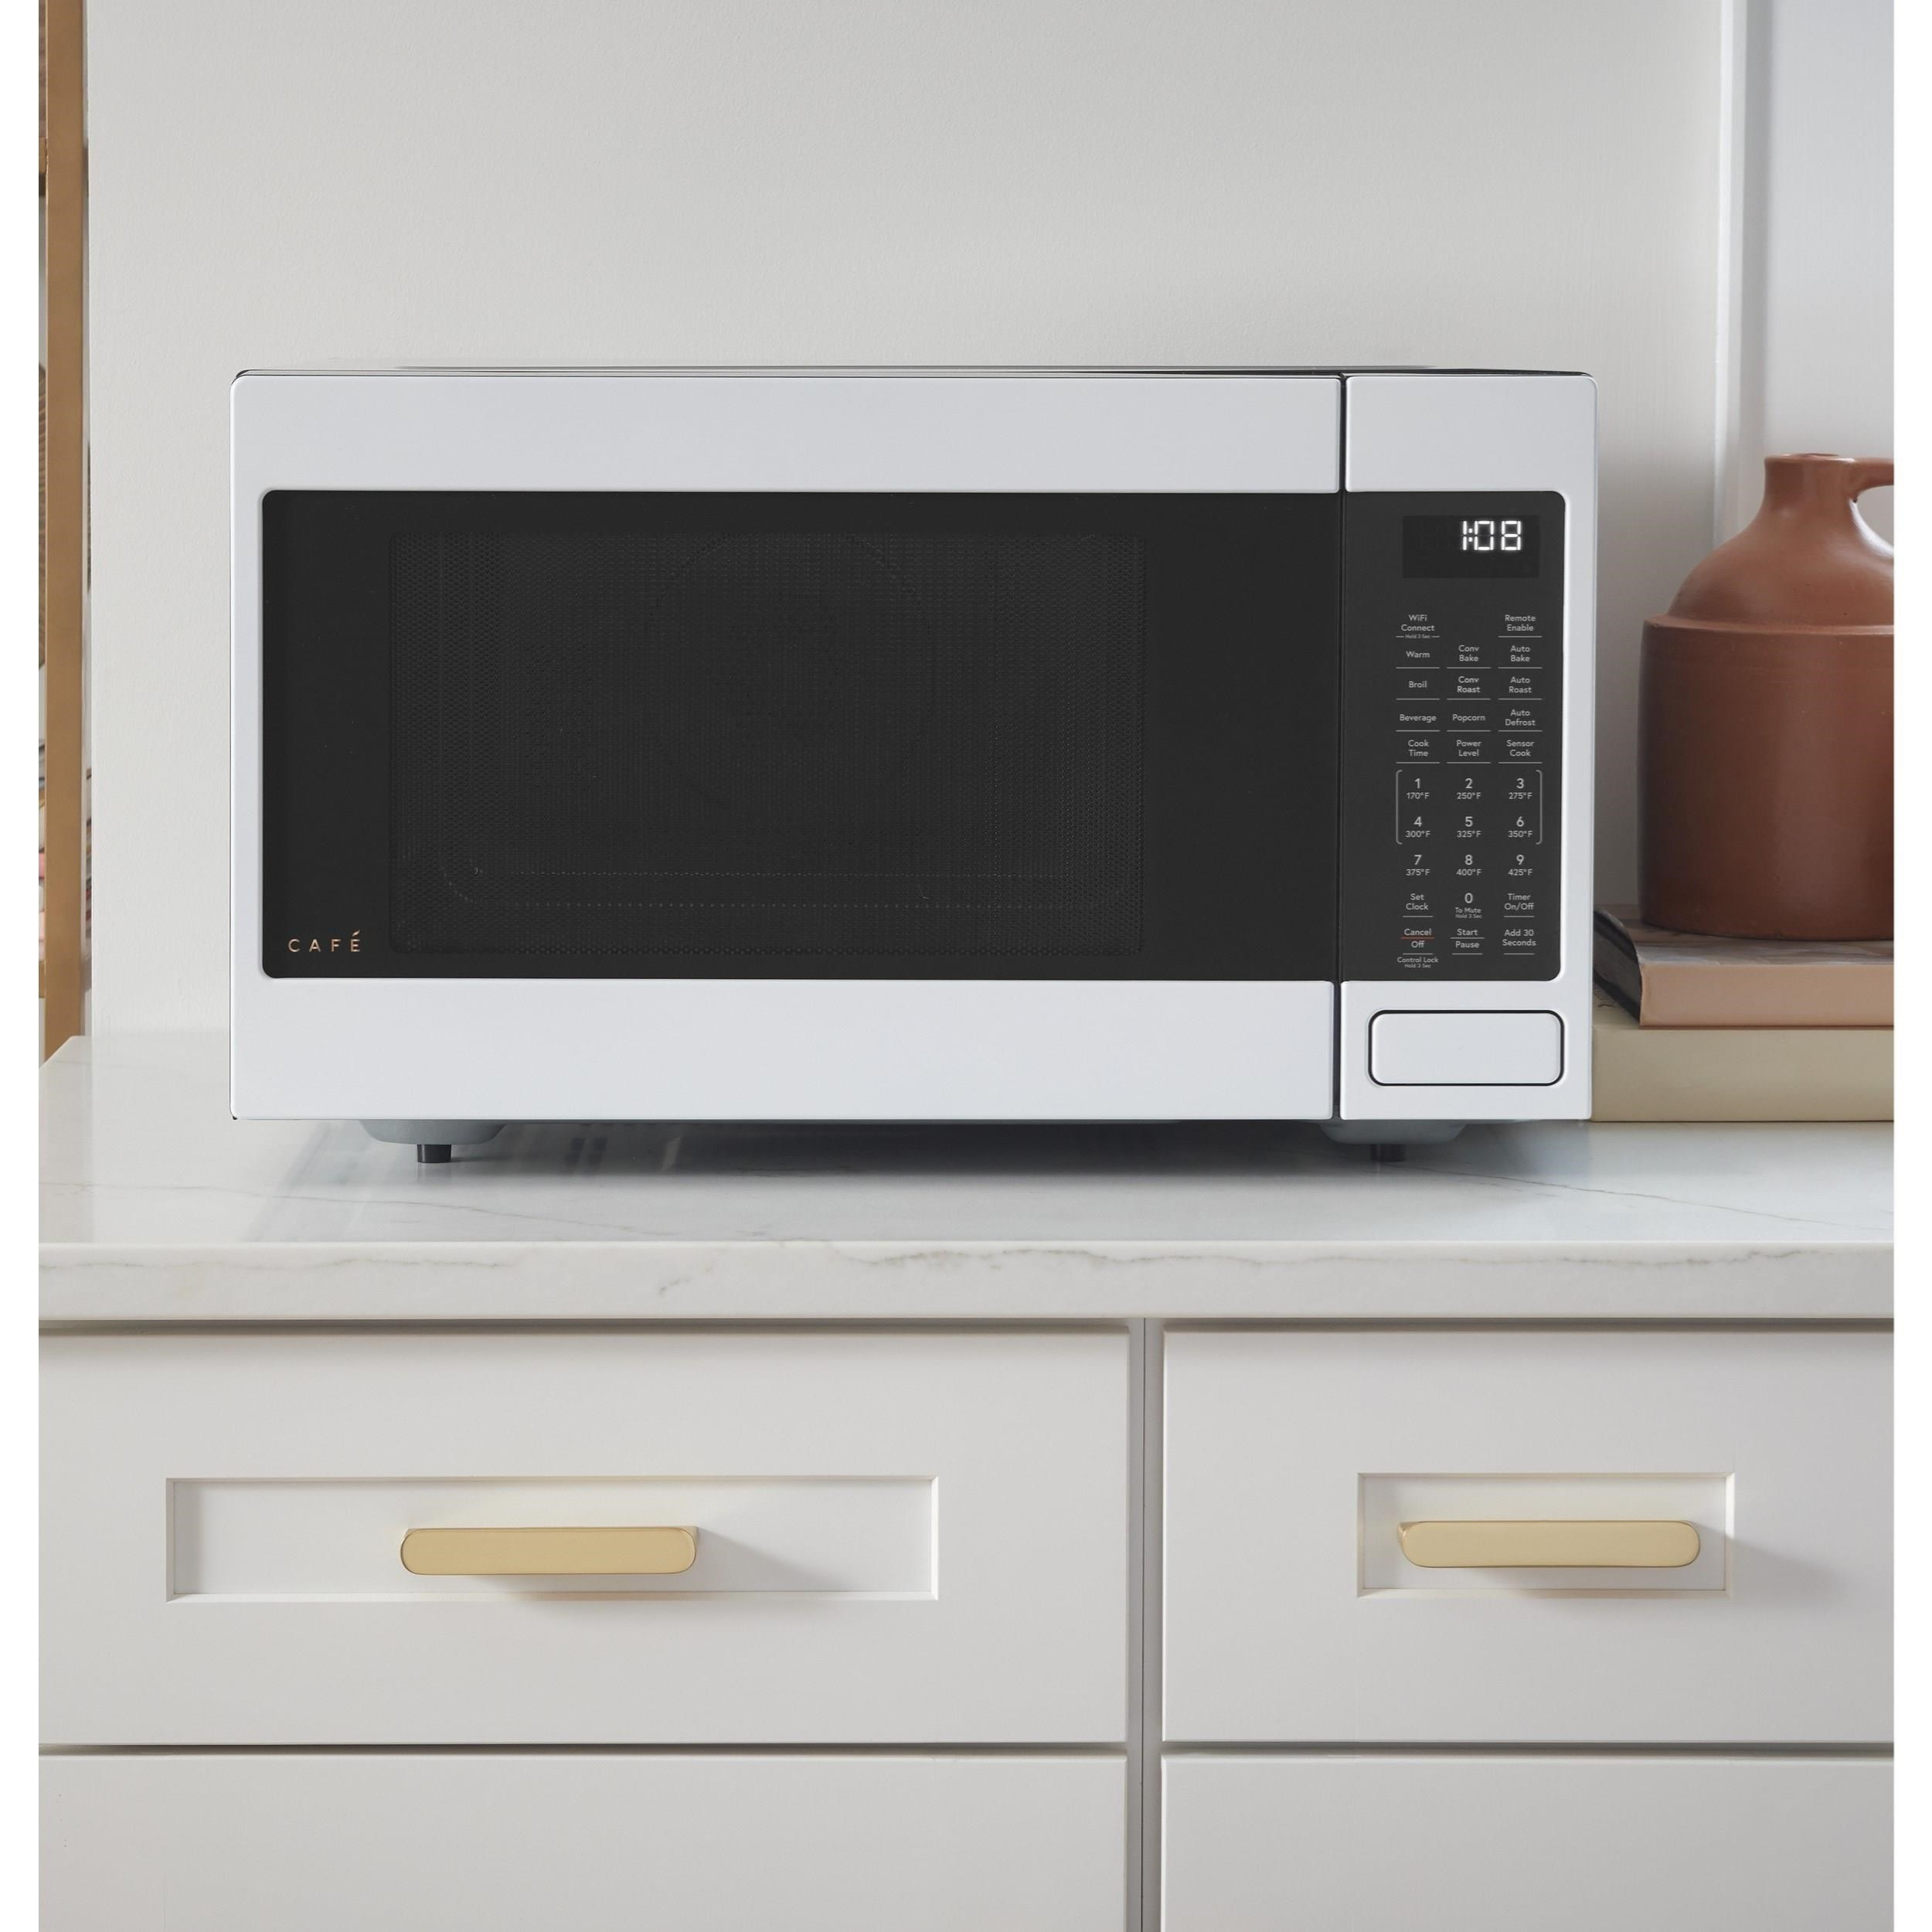 ge cafe microwave oven cafe 1 5 cu ft convection microwave oven